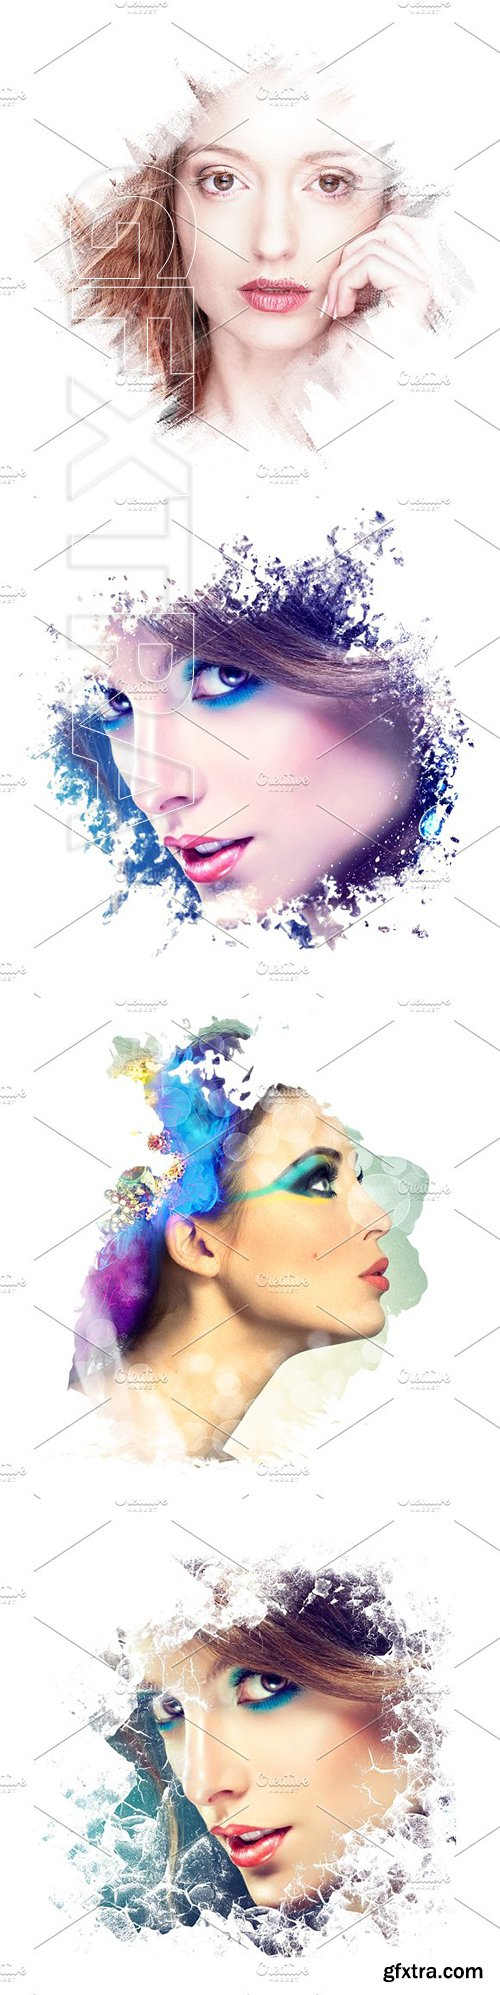 CreativeMarket - Artistic Photo Frames 3306027